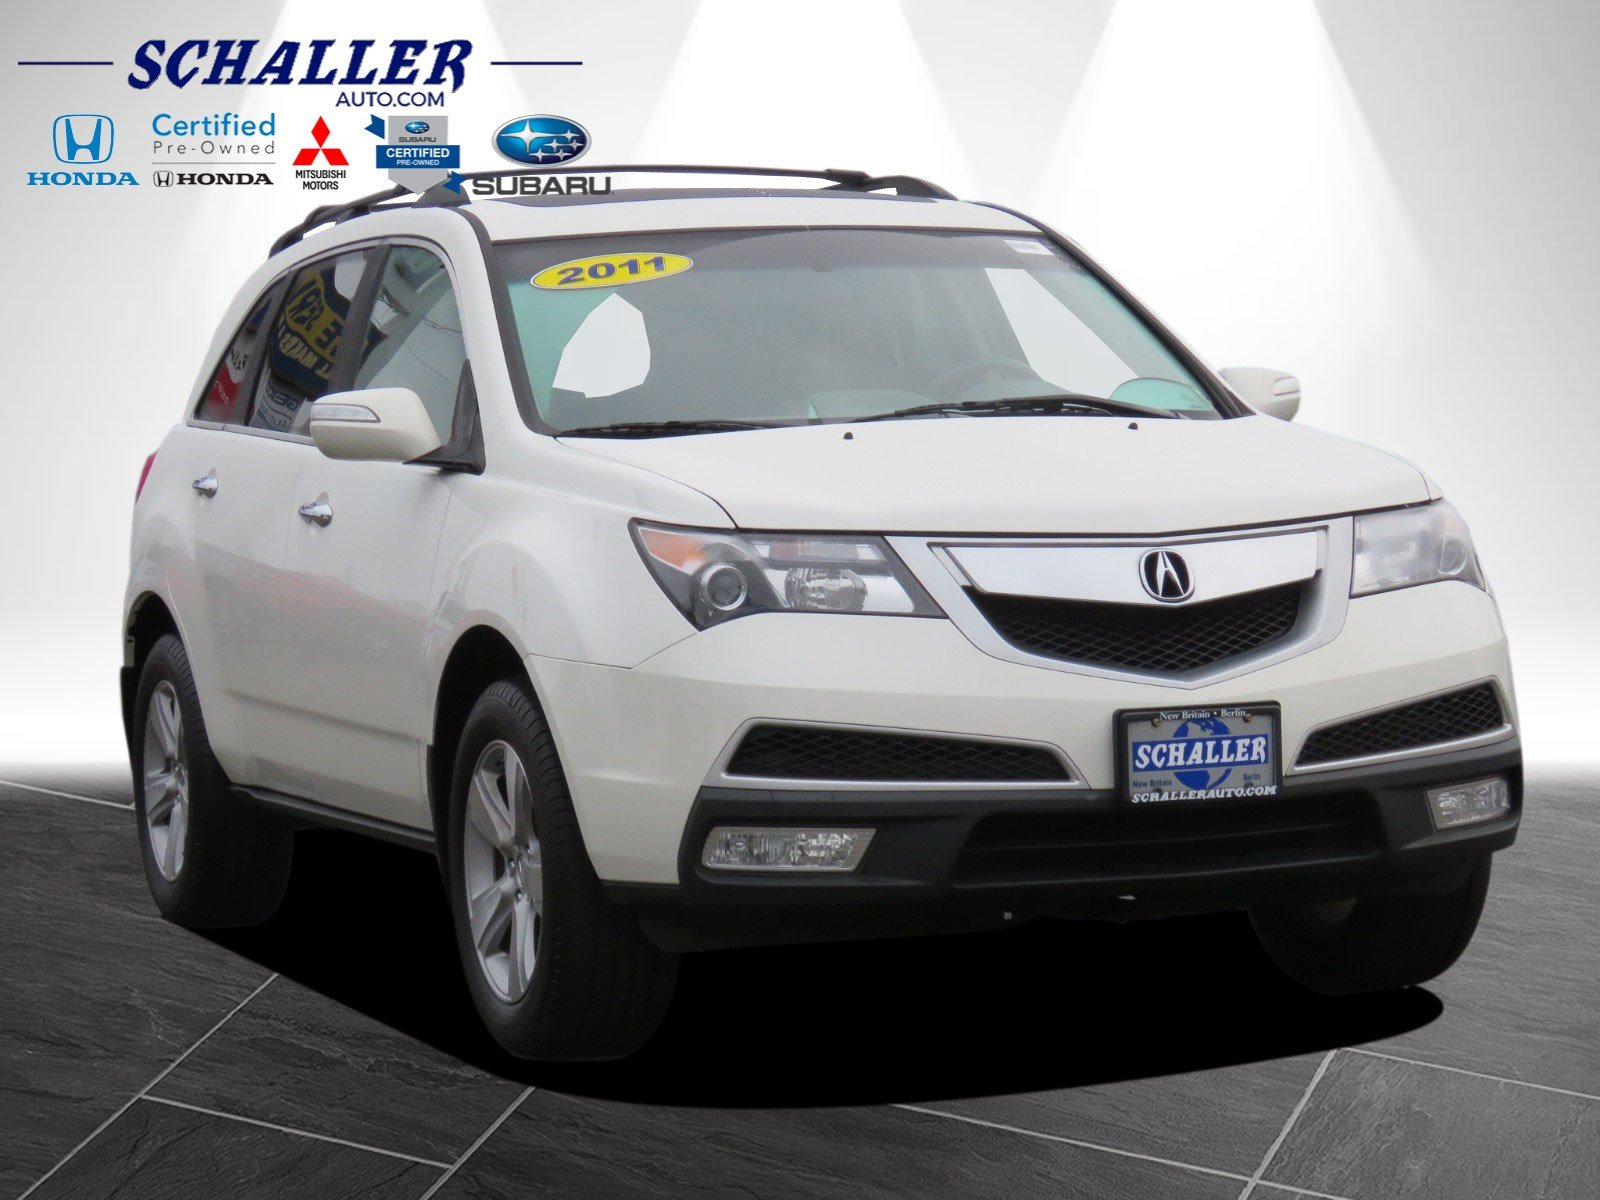 Pre Owned 2011 Acura MDX Tech Pkg Sport Utility in New Britain